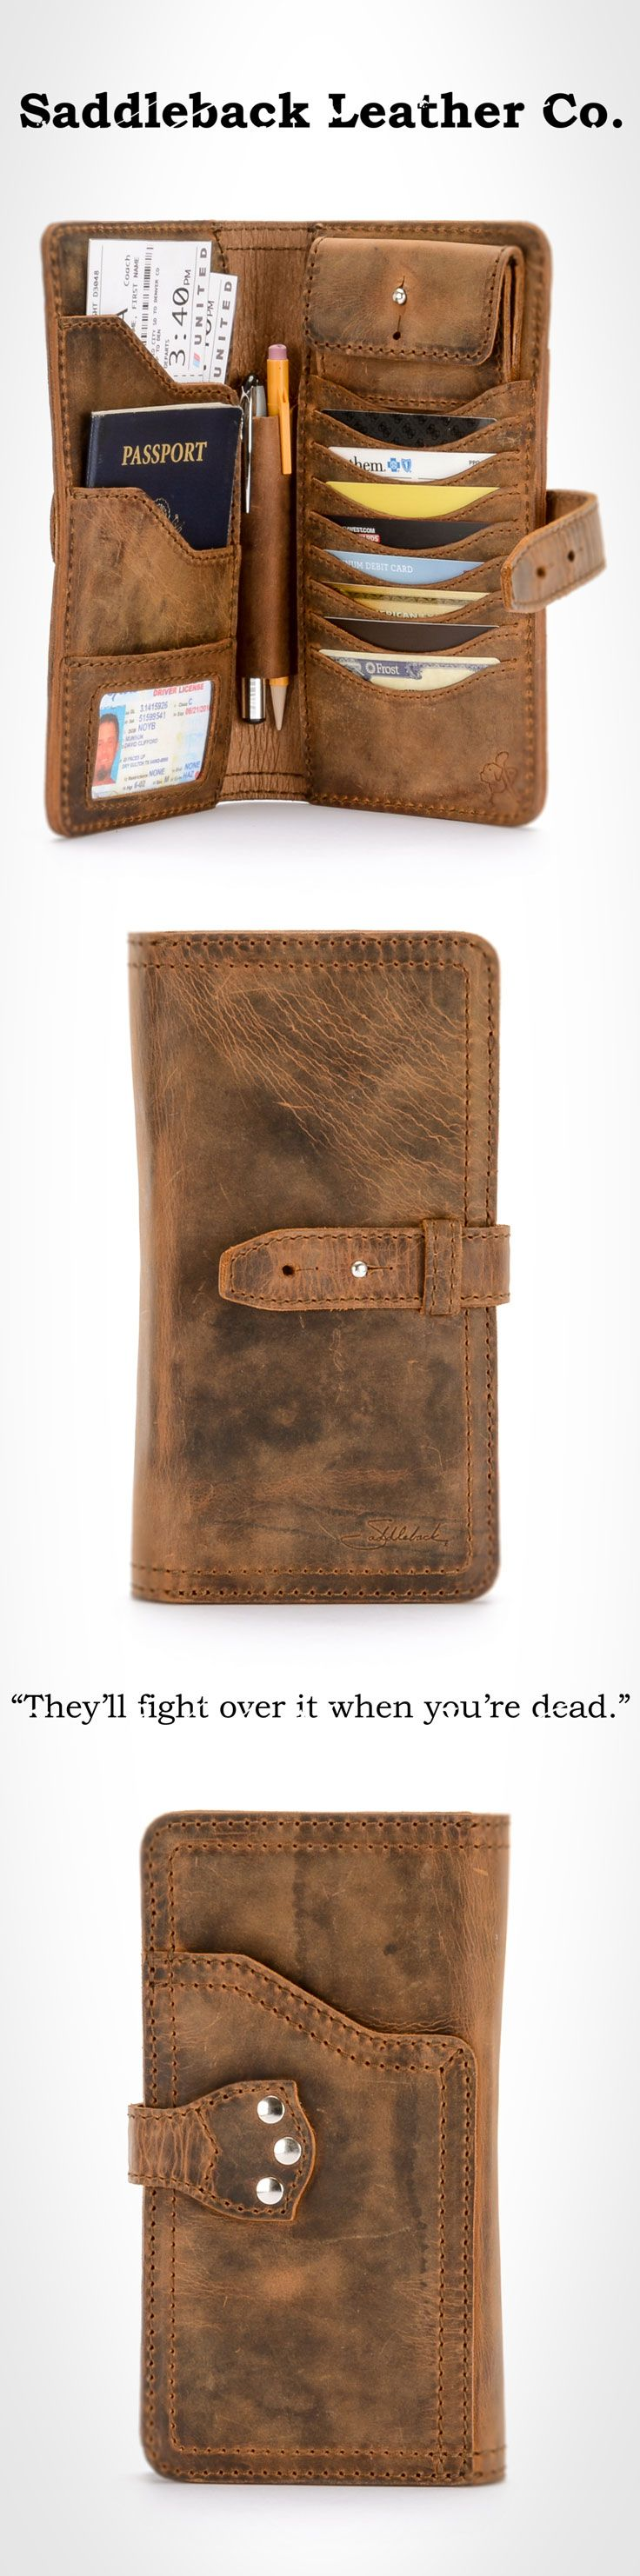 The Saddleback Leather Big Wallet in Tobacco | 100 MXS Year Warranty | $178.00